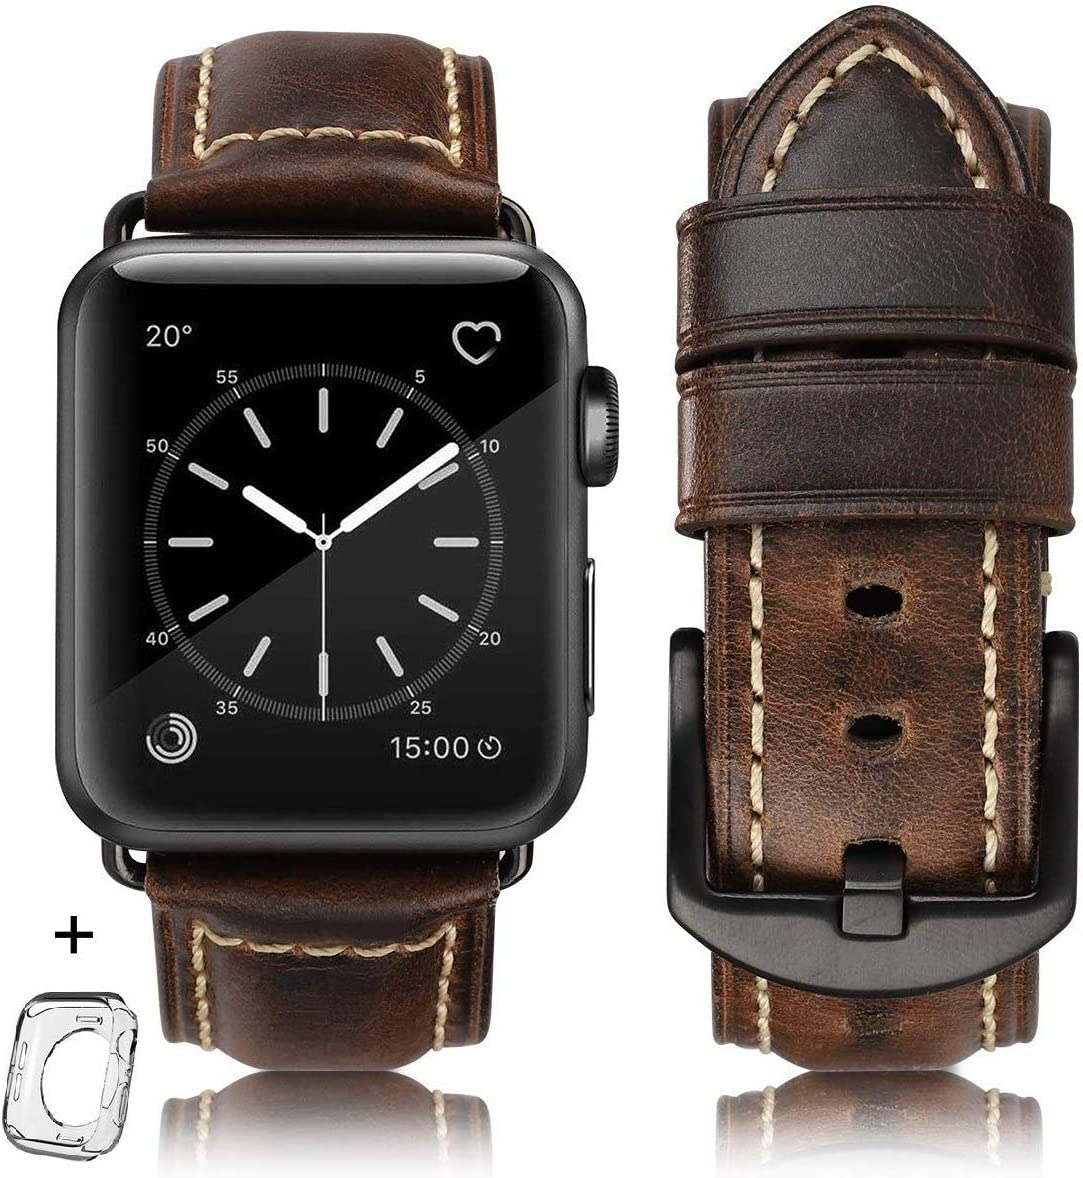 HUAFIY Compatible for apple Watch Band 42mm 44mm men,Top Grain Leather Band Replacement Strap iWatch Series 6/5/ 4 3 2 1,Sport, Edition. New Retro Leather (Retro coffee+Black Buckle, 42mm 44mm-ML)